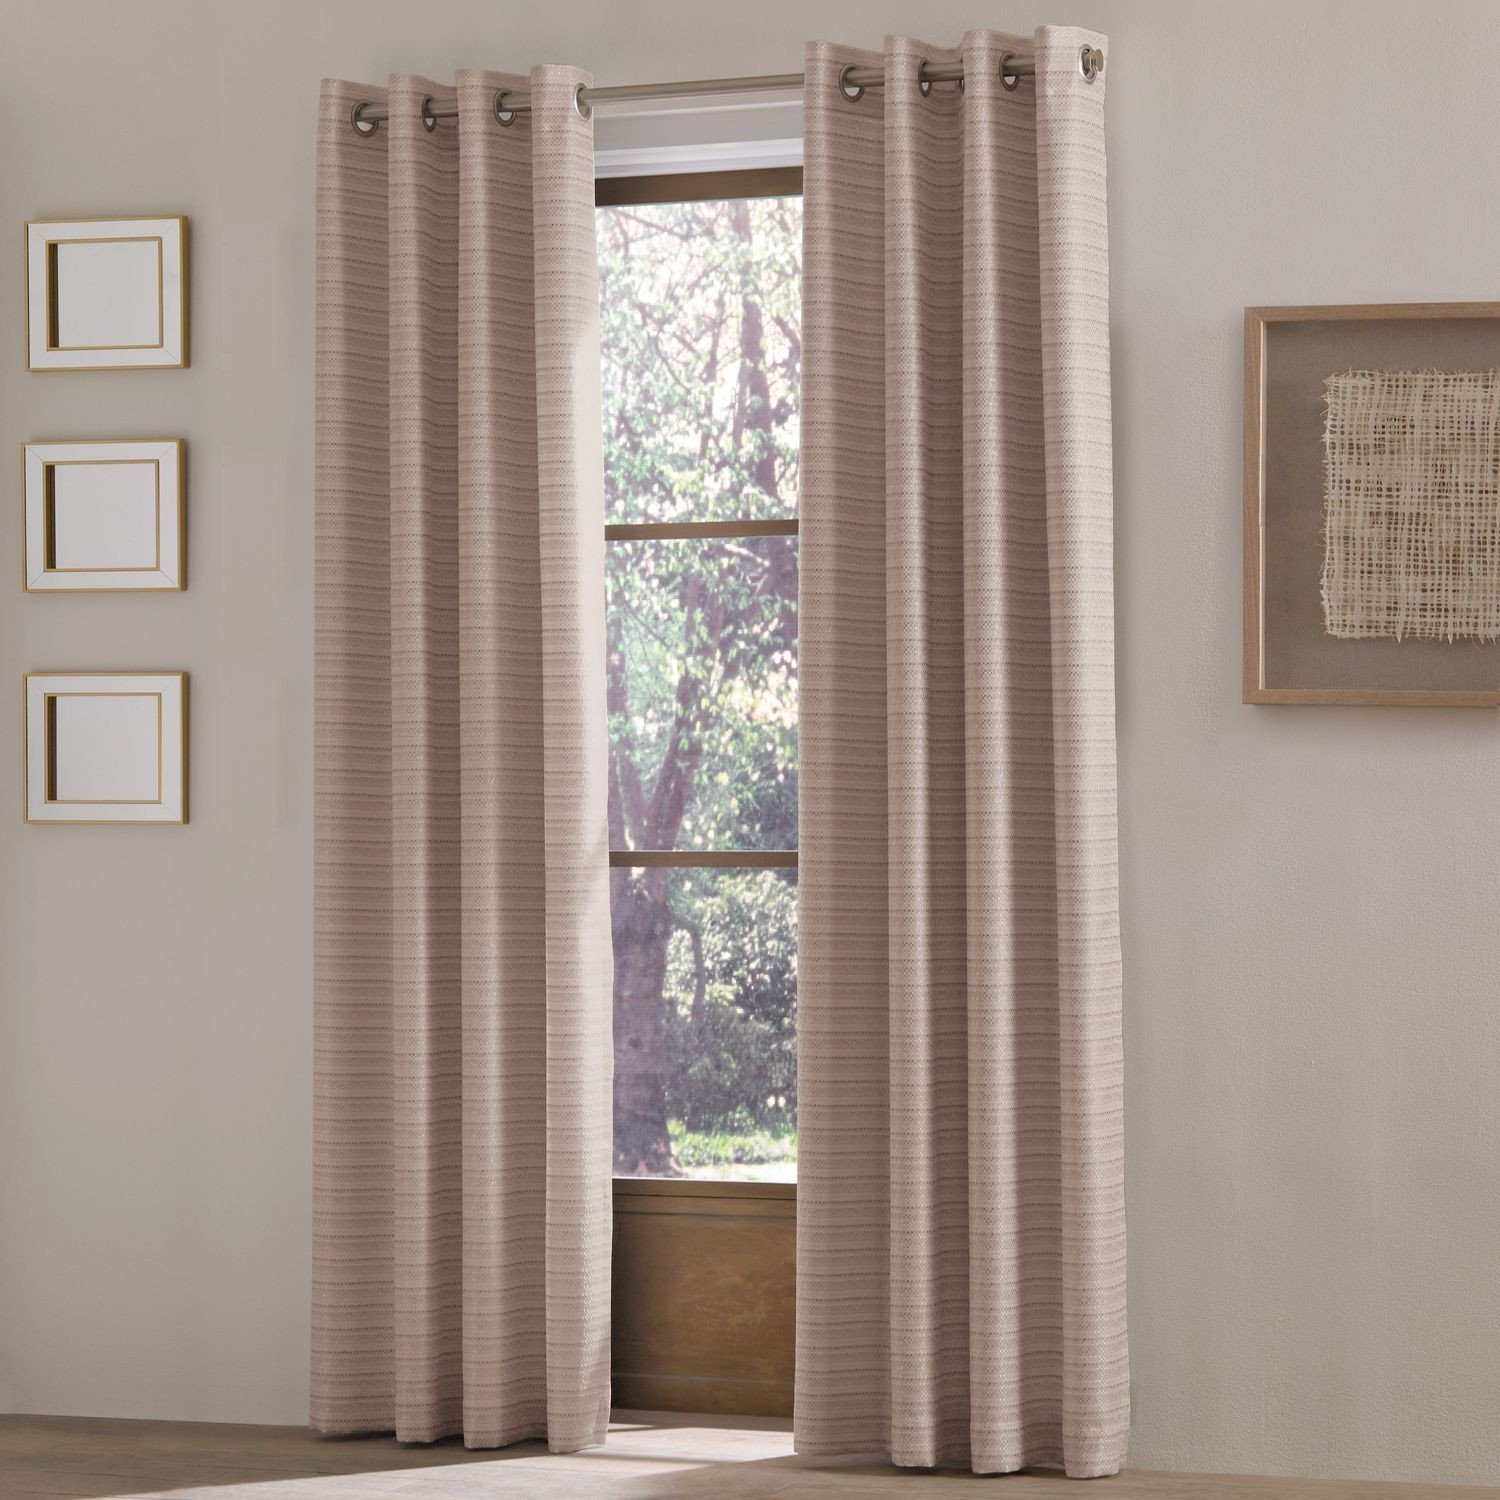 "Bedroom Curtains at Walmart Awesome Eleanore Blush 84"" Grommet Curtain"